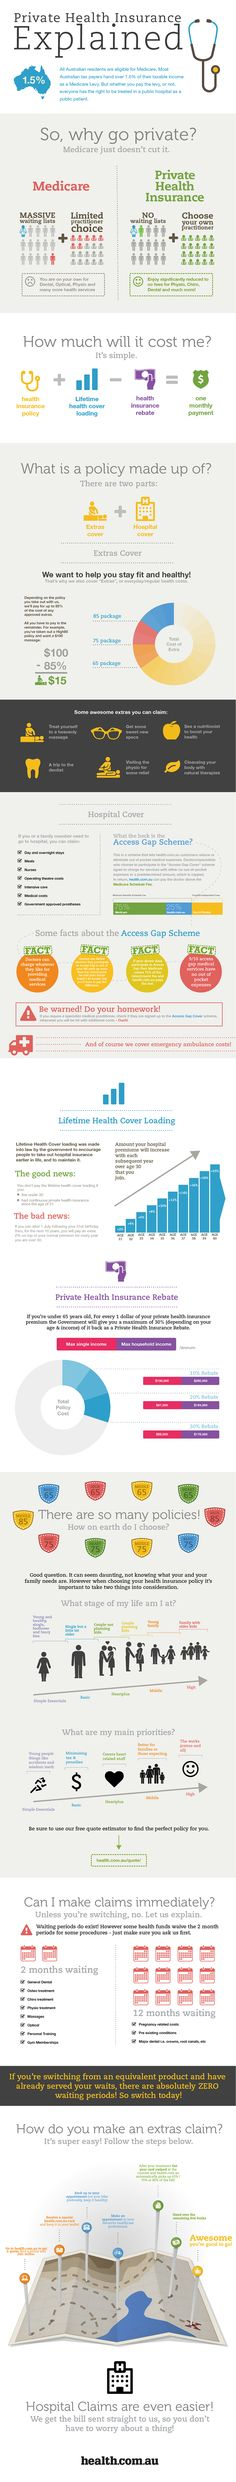 Medicare versus Private Health Insurance